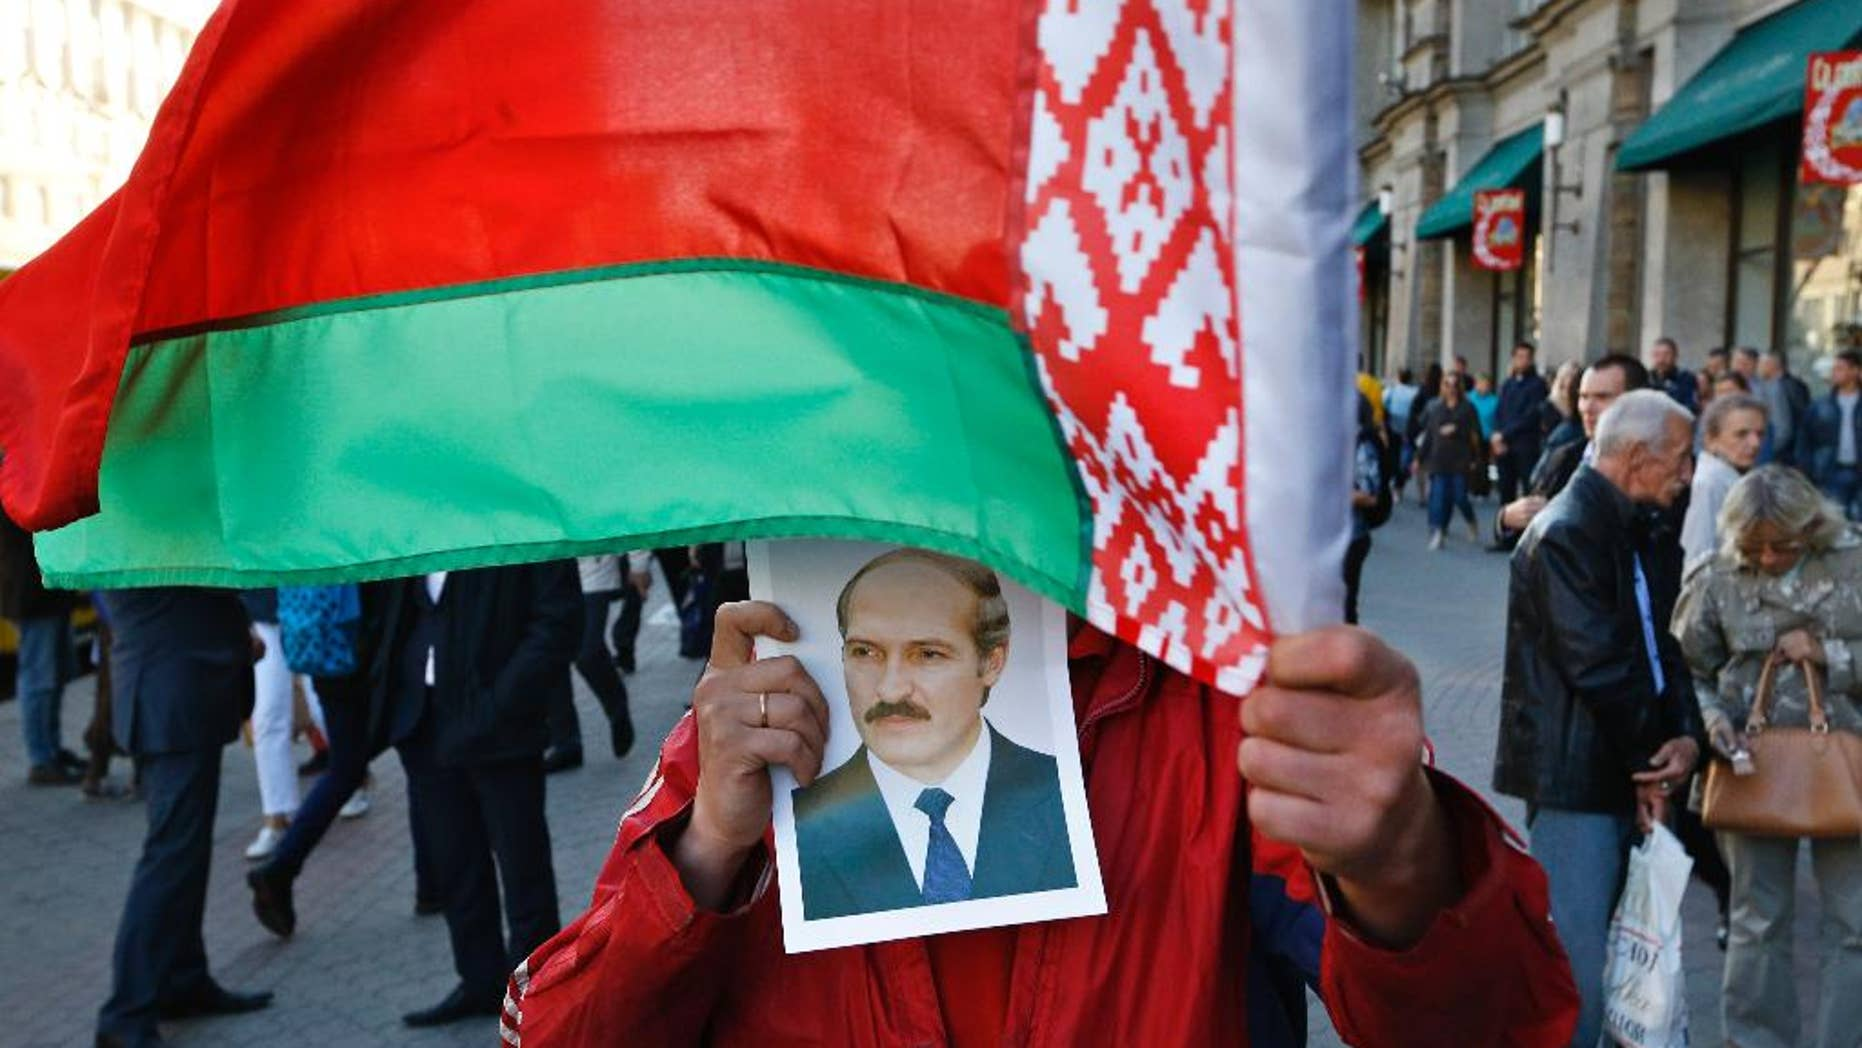 A supporter of Belarusian President Alexander Lukashenko holds his portrait and waves a state flag in downtown Minsk, Belarus, Thursday, Sept. 10, 2015. Presidential elections in Belarus are scheduled for October 11, 2015. (AP Photo/Sergei Grits)